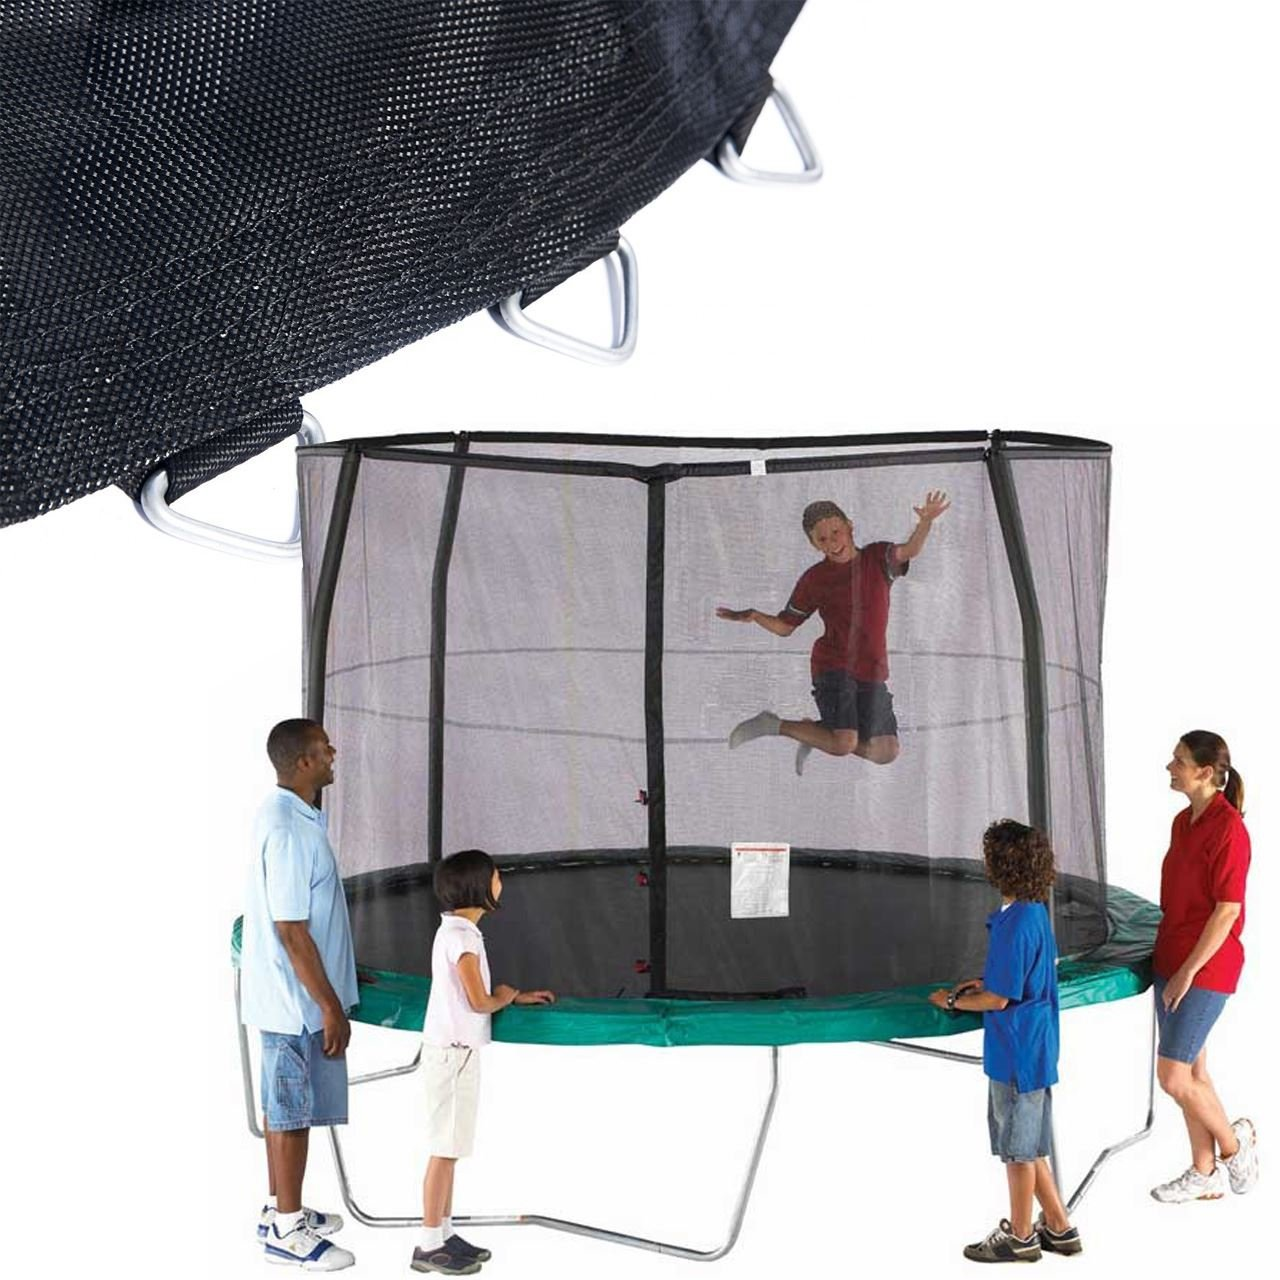 SkyBound 14' Net + Mat Combo (Fits Orbounder Brand Trampolines) by SkyBound